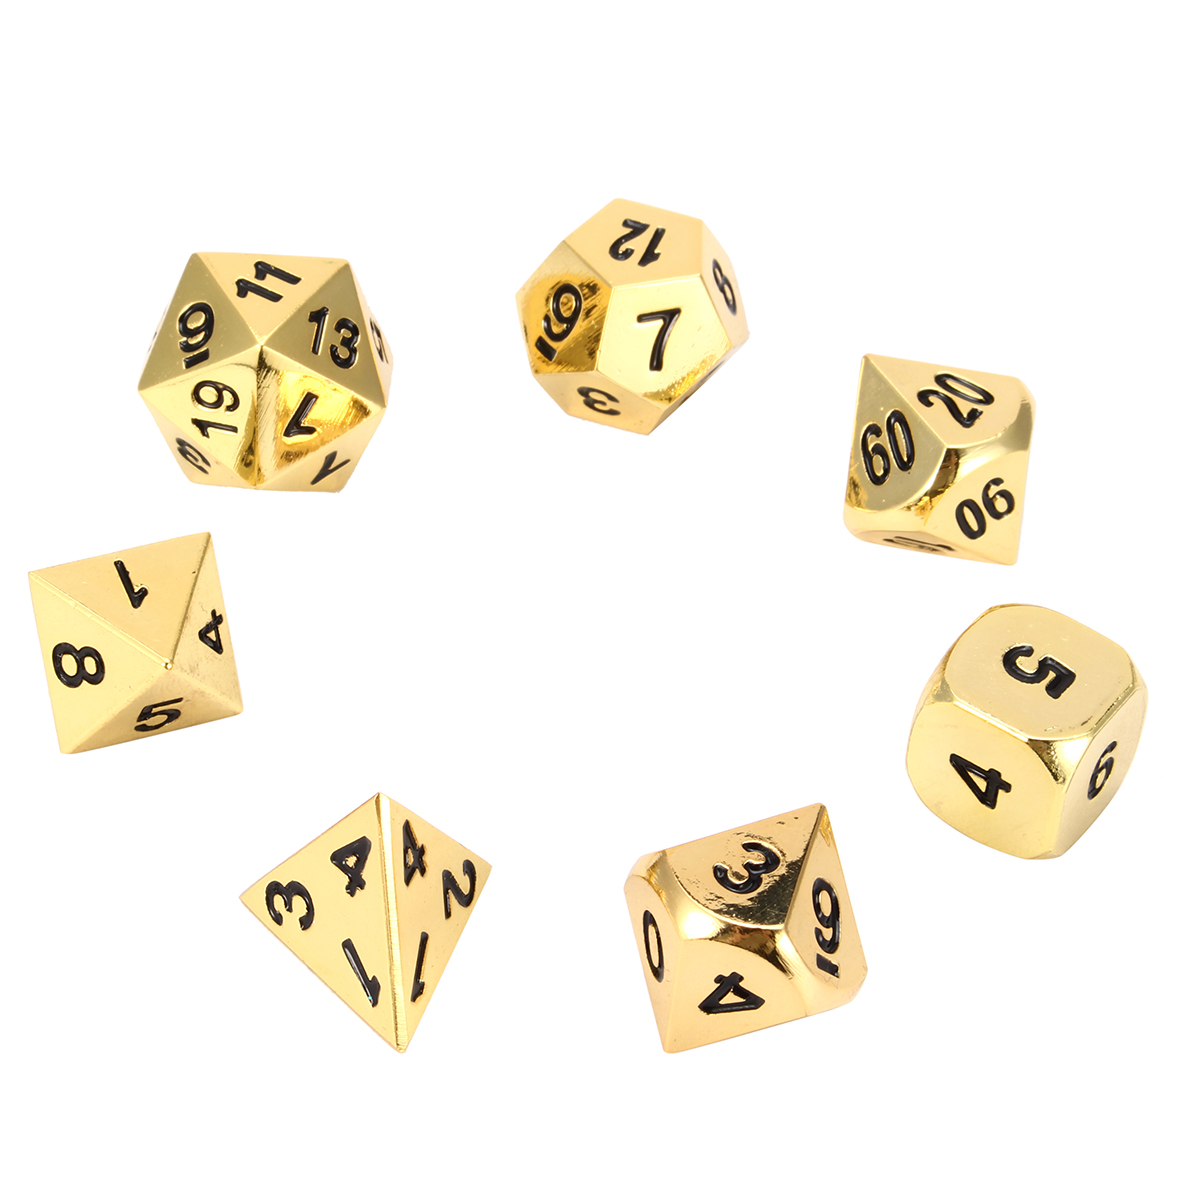 Polyedre-metal-Dice-For-RPG-MTG-Poker-Card-jeux-7PCS-With-4-6-8-10-12-20D